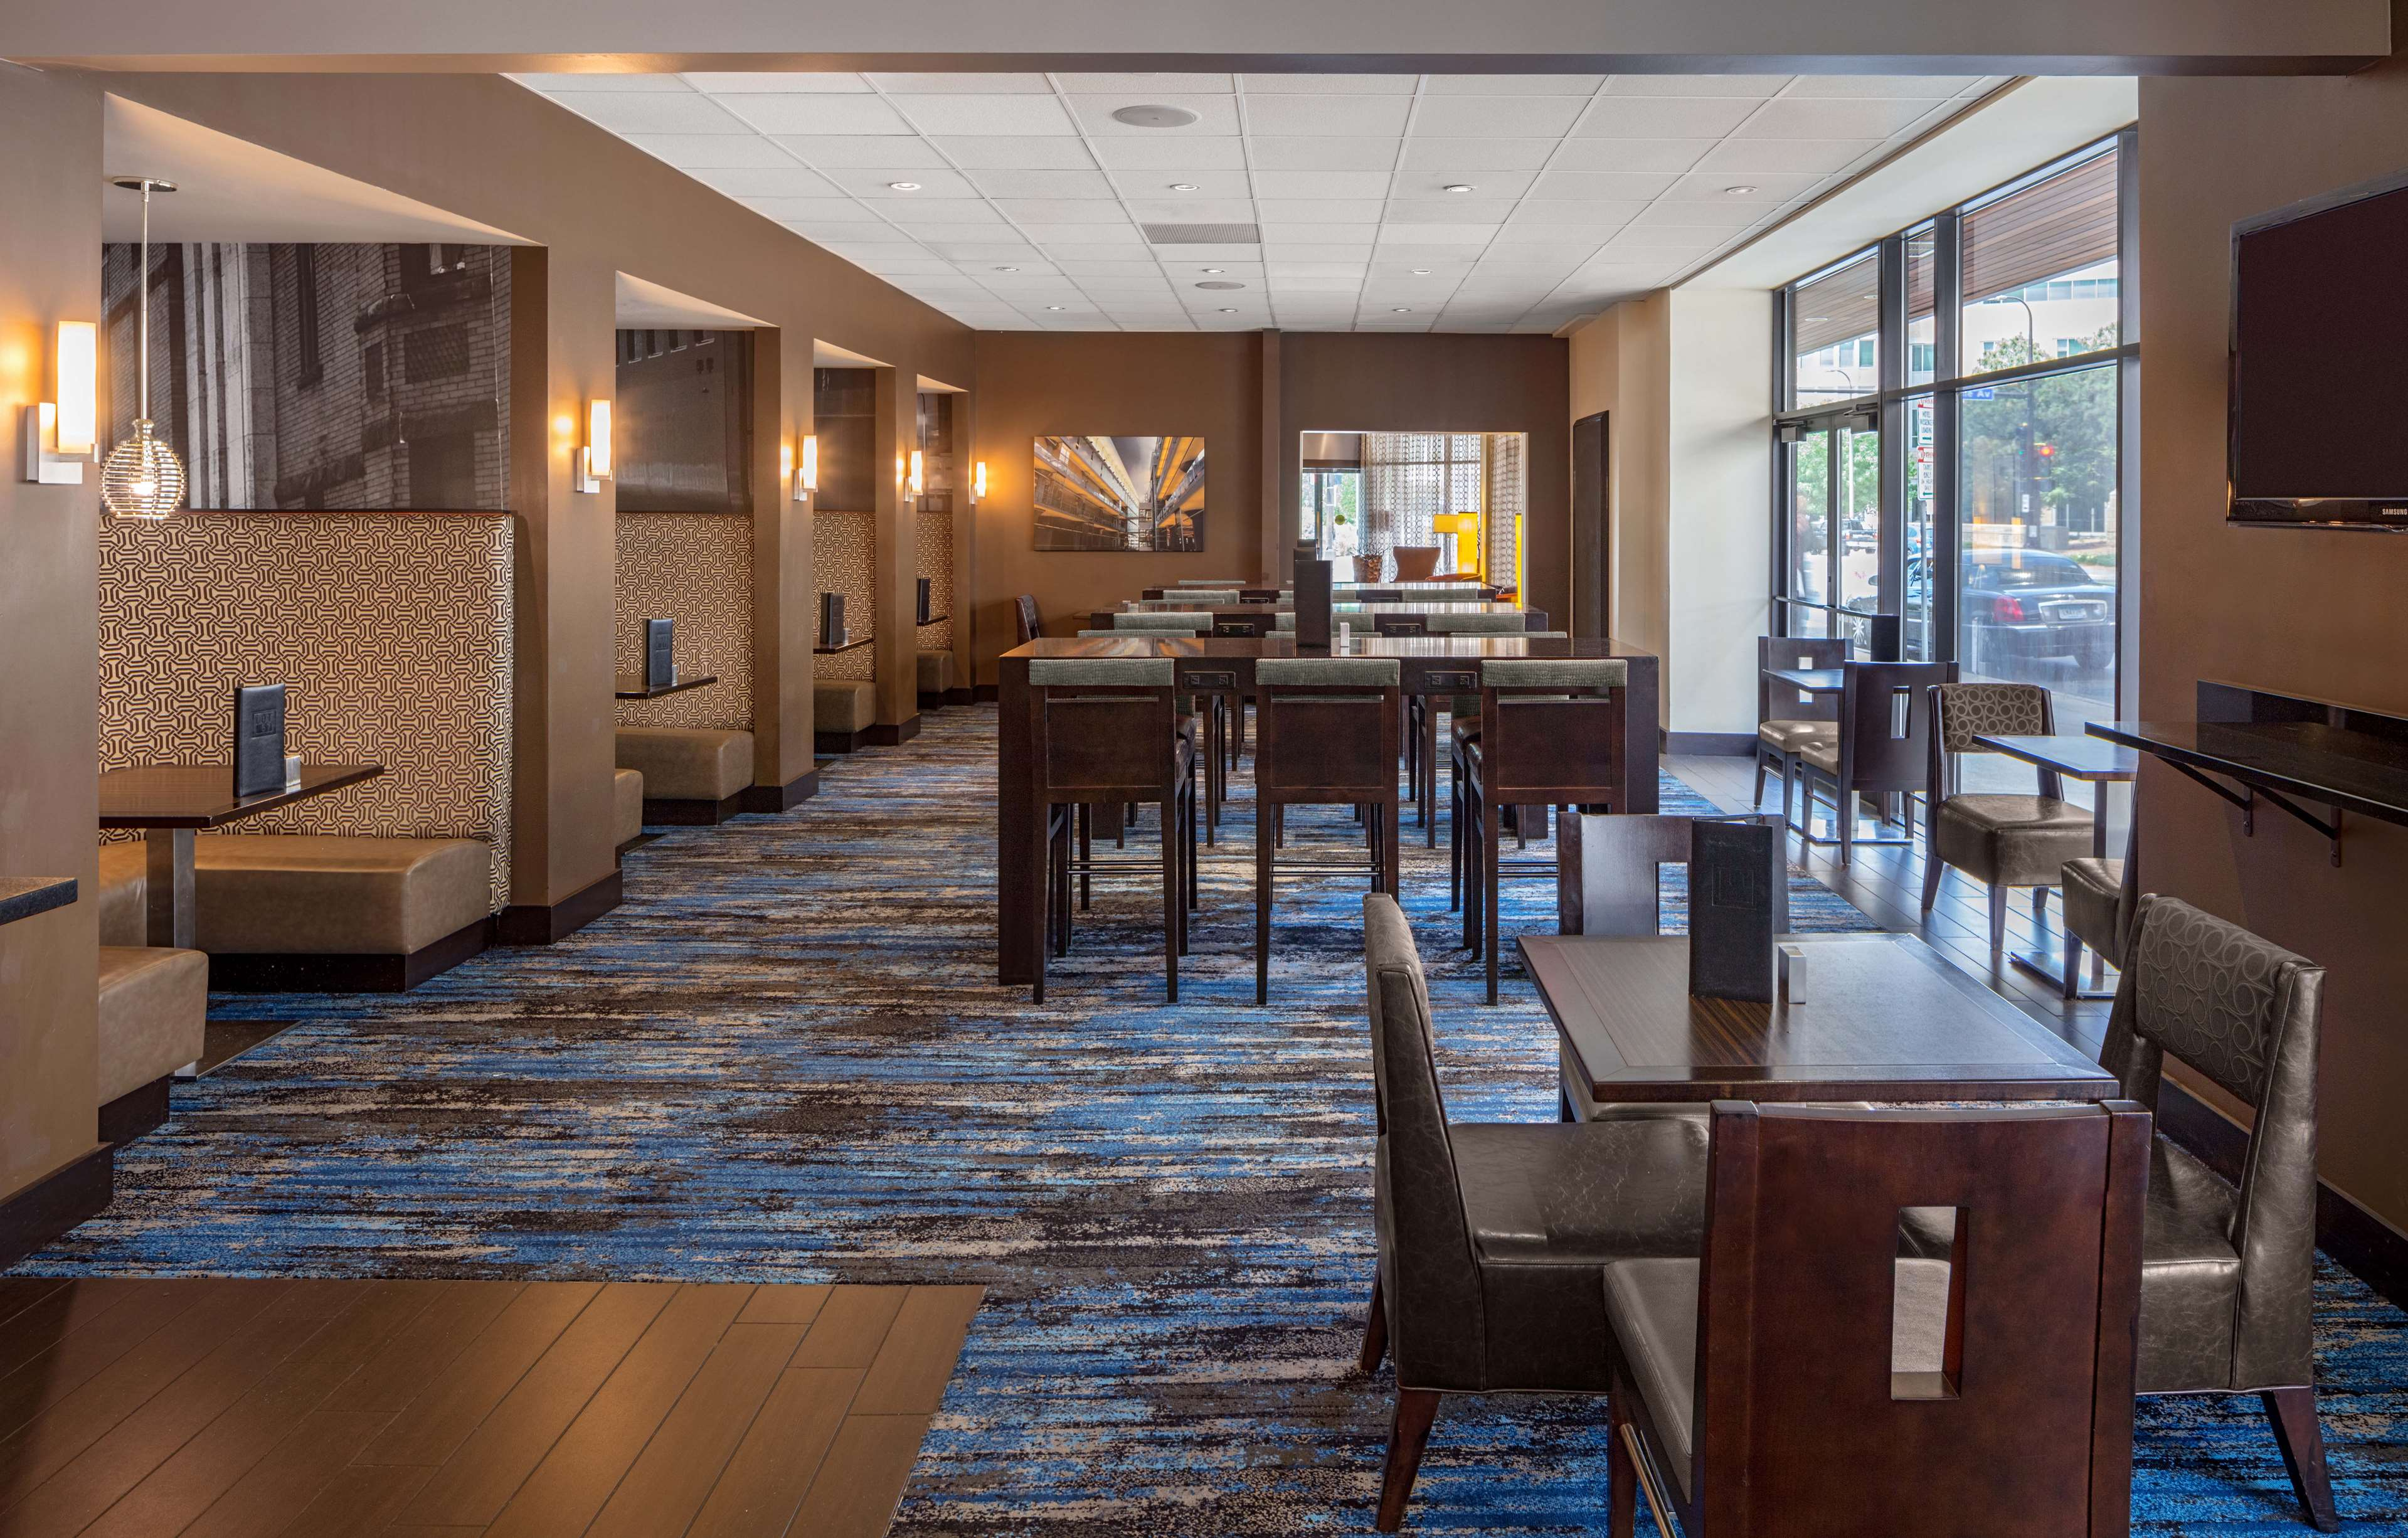 DoubleTree Suites by Hilton Hotel Minneapolis image 10